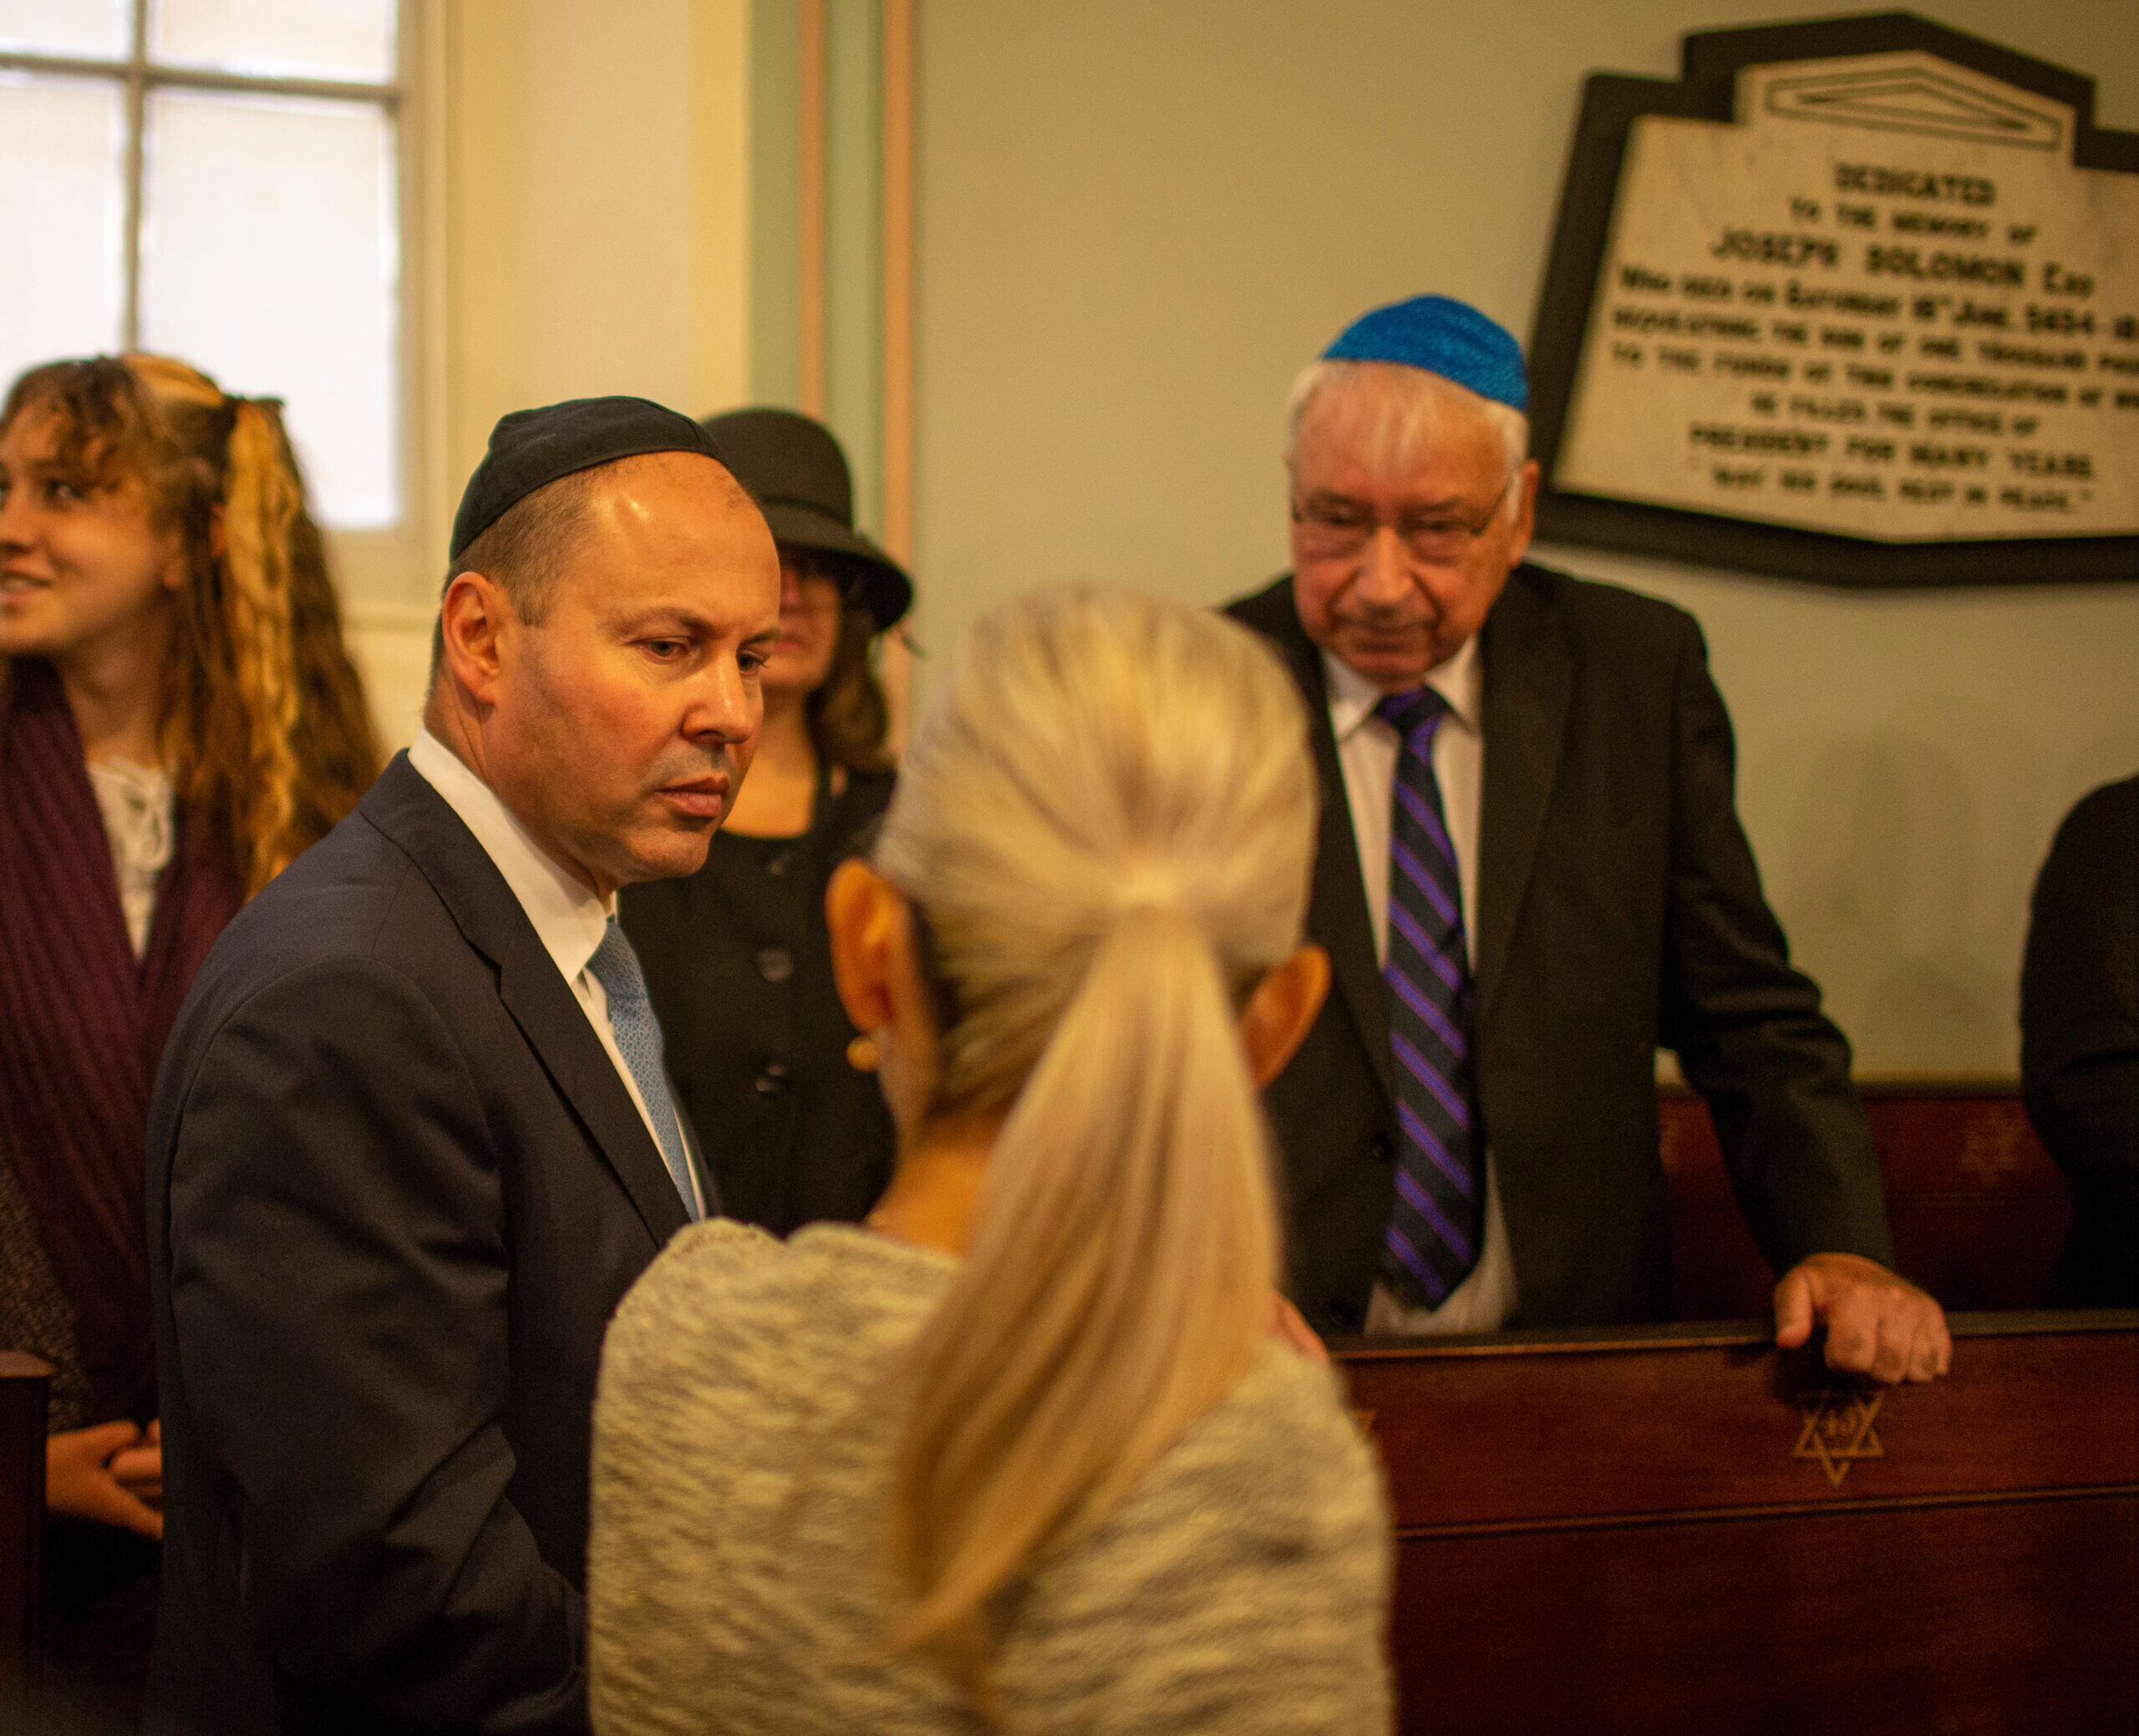 'Every student should learn about the Shoah'